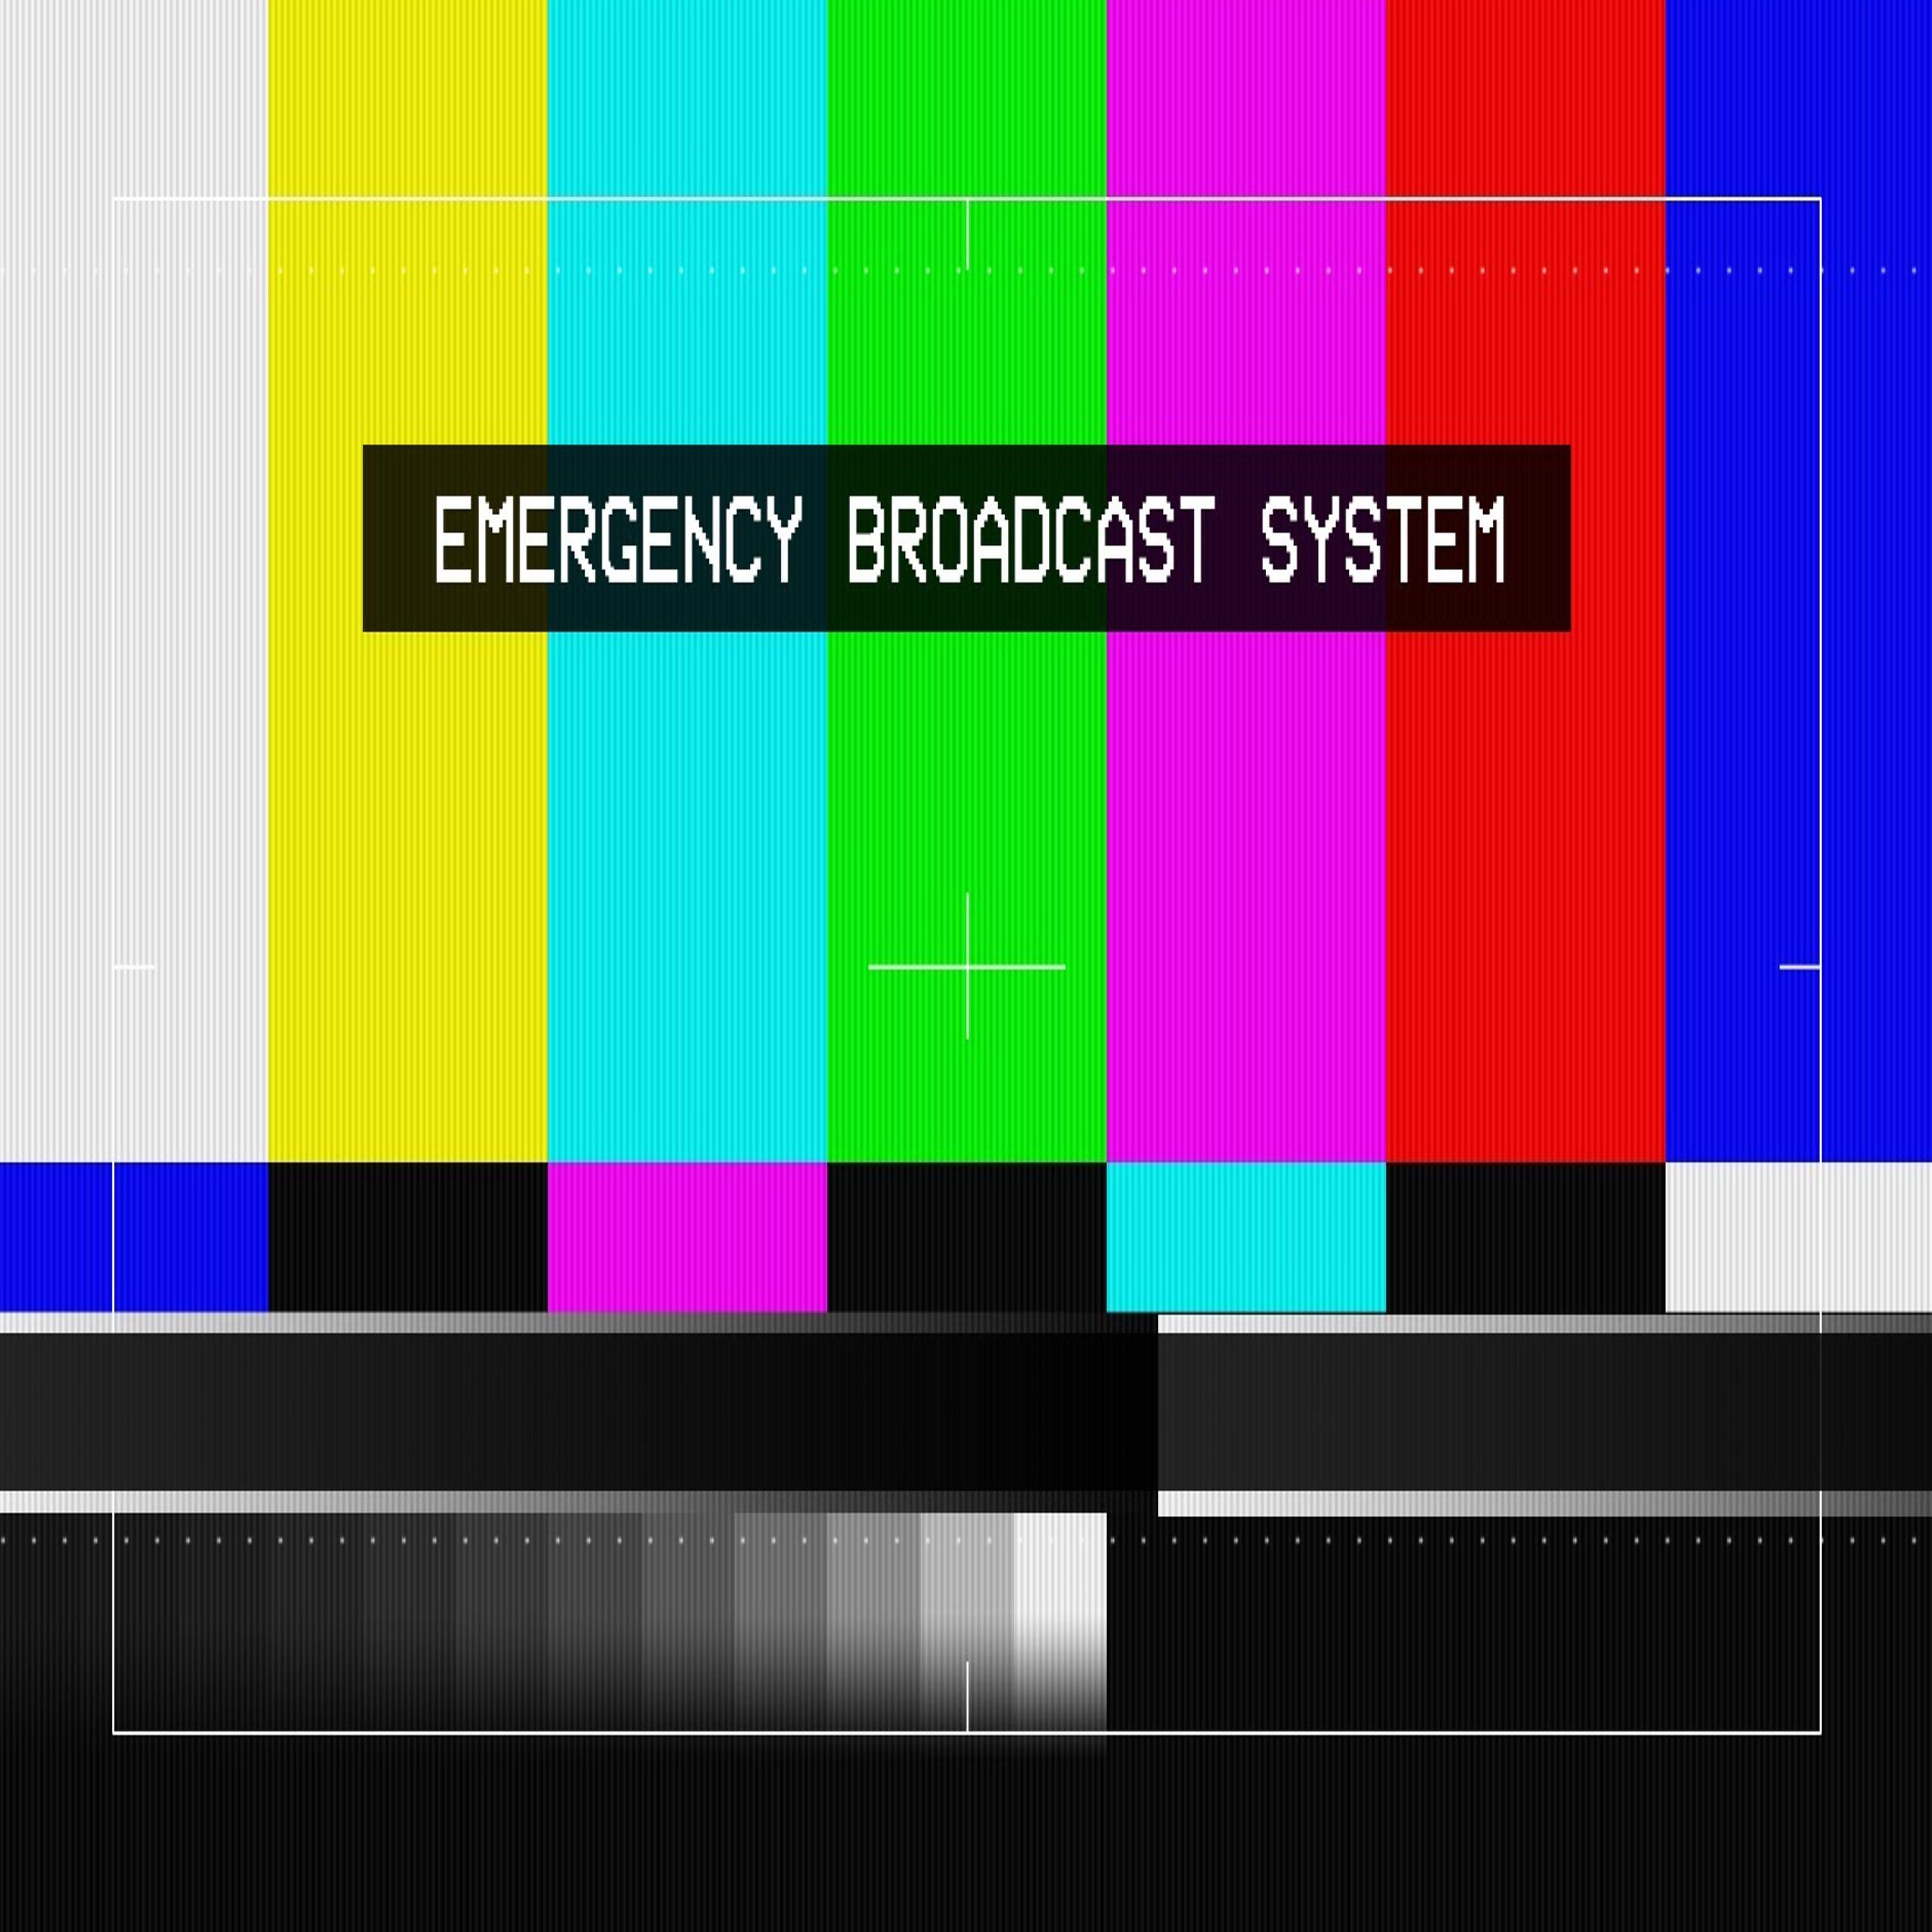 Pin On Emergency Broadcast System